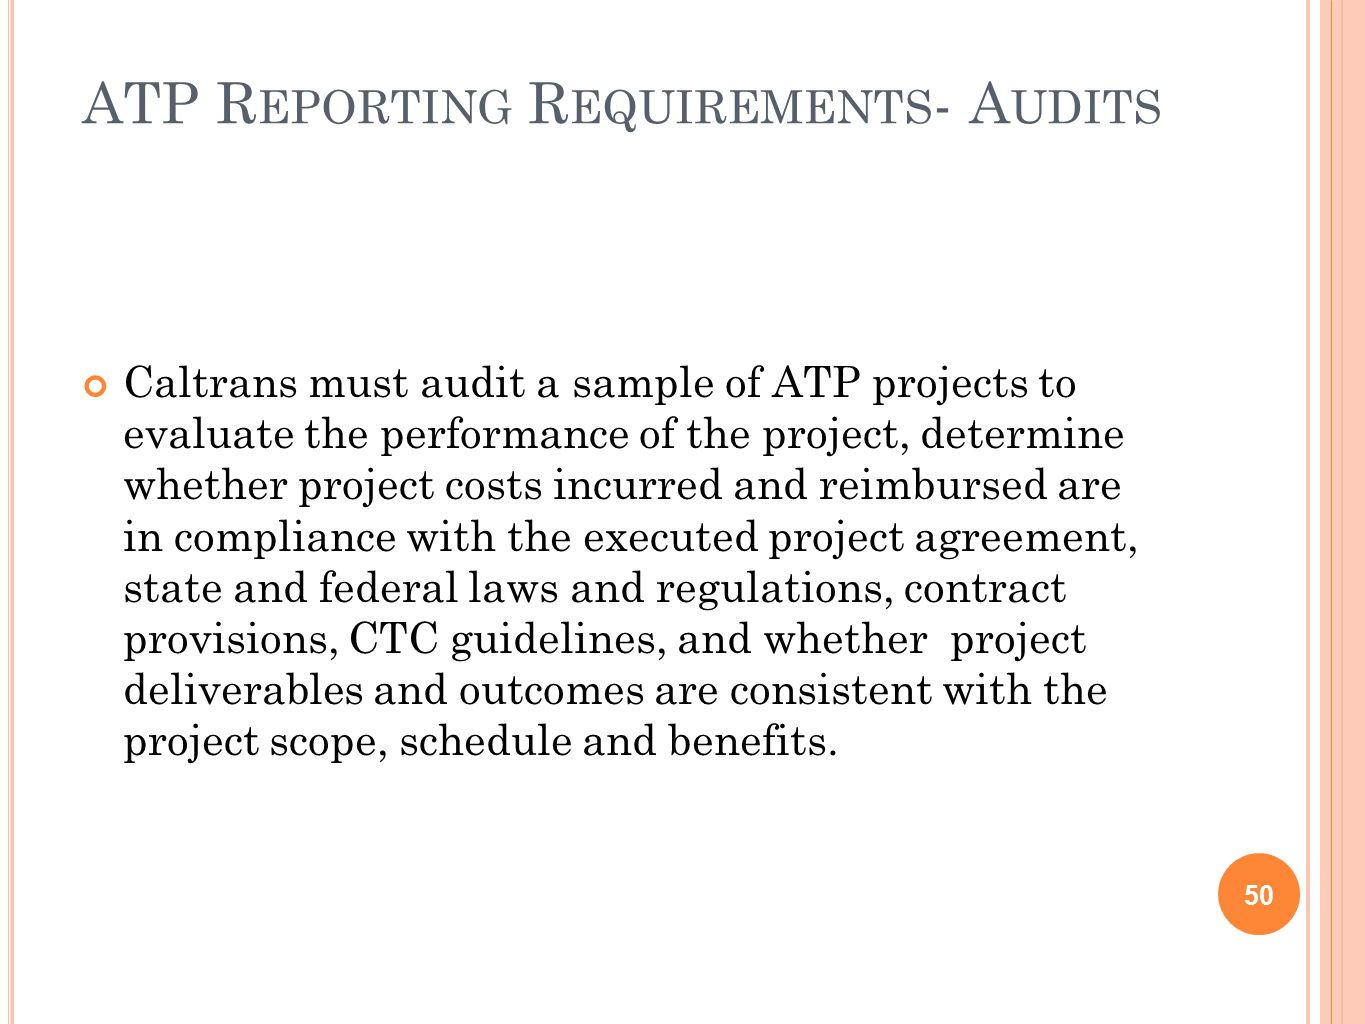 ATP R EPORTING R EQUIREMENTS - A UDITS 50 Caltrans must audit a sample of ATP projects to evaluate the performance of the project, determine whether project costs incurred and reimbursed are in compliance with the executed project agreement, state and federal laws and regulations, contract provisions, CTC guidelines, and whether project deliverables and outcomes are consistent with the project scope, schedule and benefits.